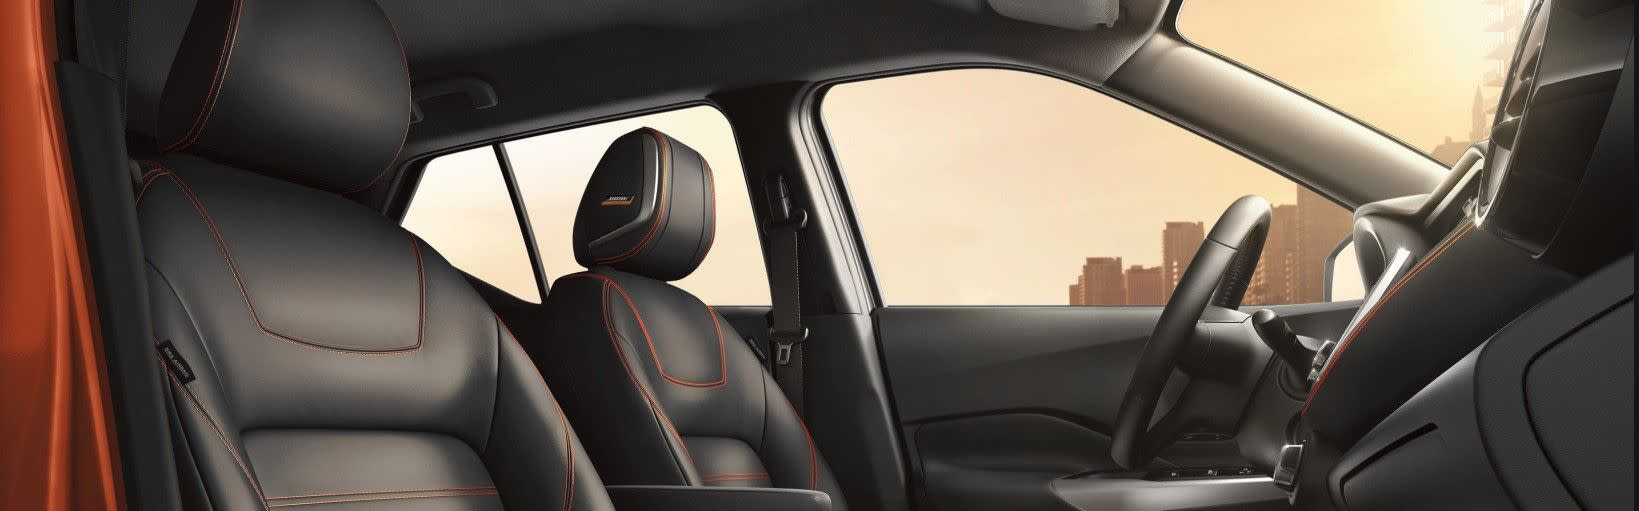 You'll Love Getting Behind the Wheel of the Nissan Kicks!